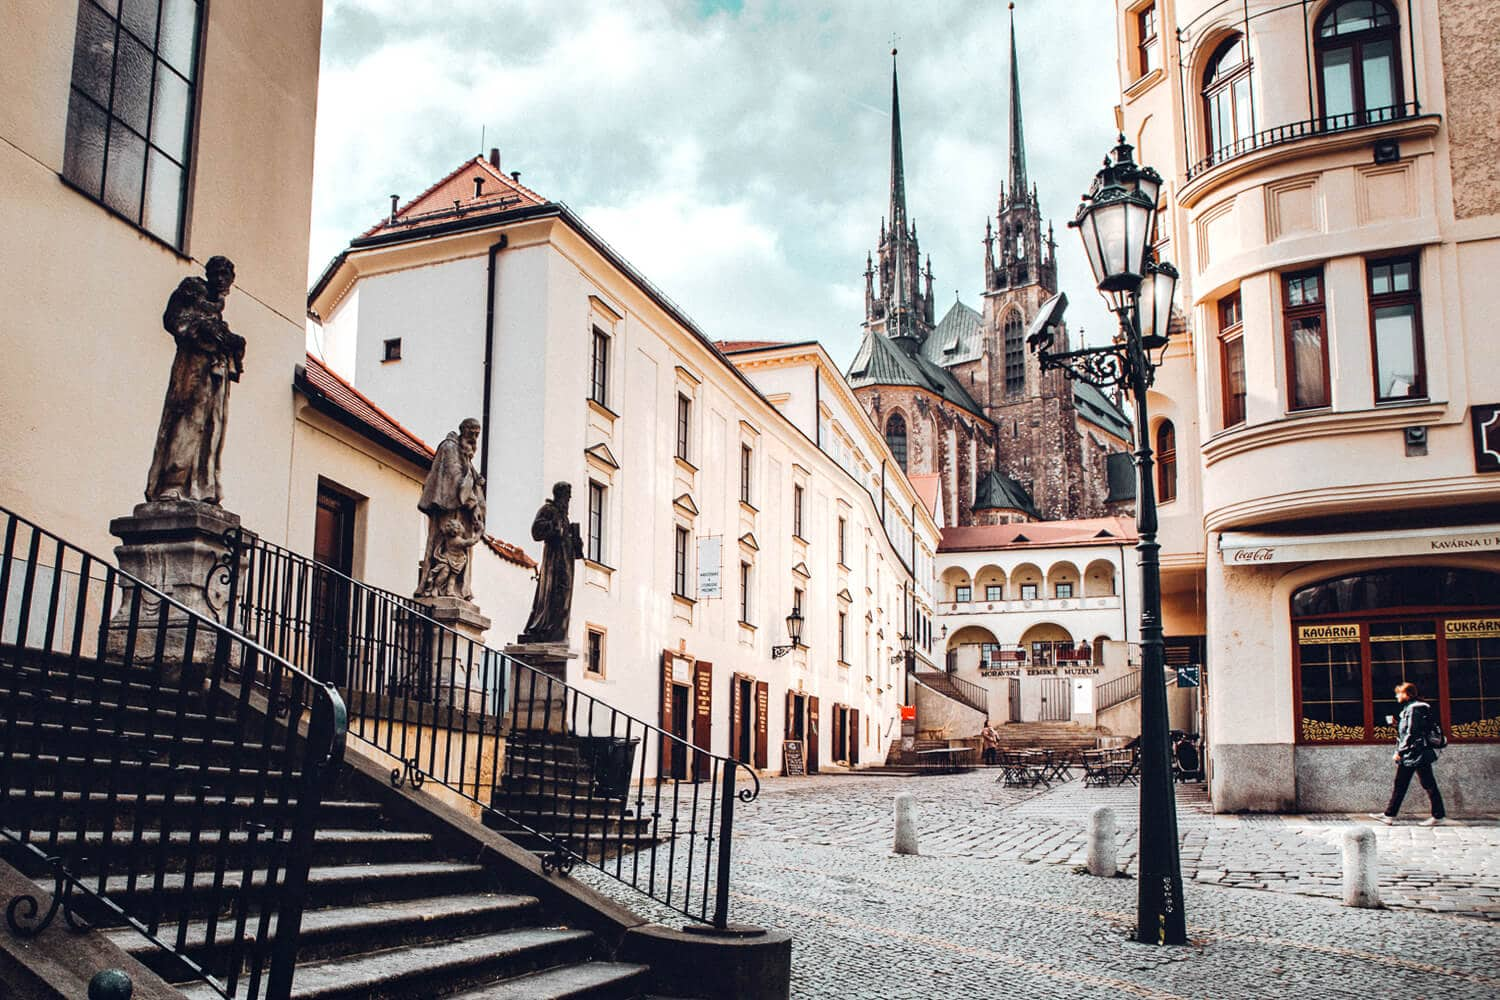 Brno is the 2nd largest city in the Czech Republic, but it is often overshadowed by it's more popular sister, Prague. From it's beautiful architecture and charming streets to the castle on the hill, click to discover 20 pictures to inspire you to travel to Brno